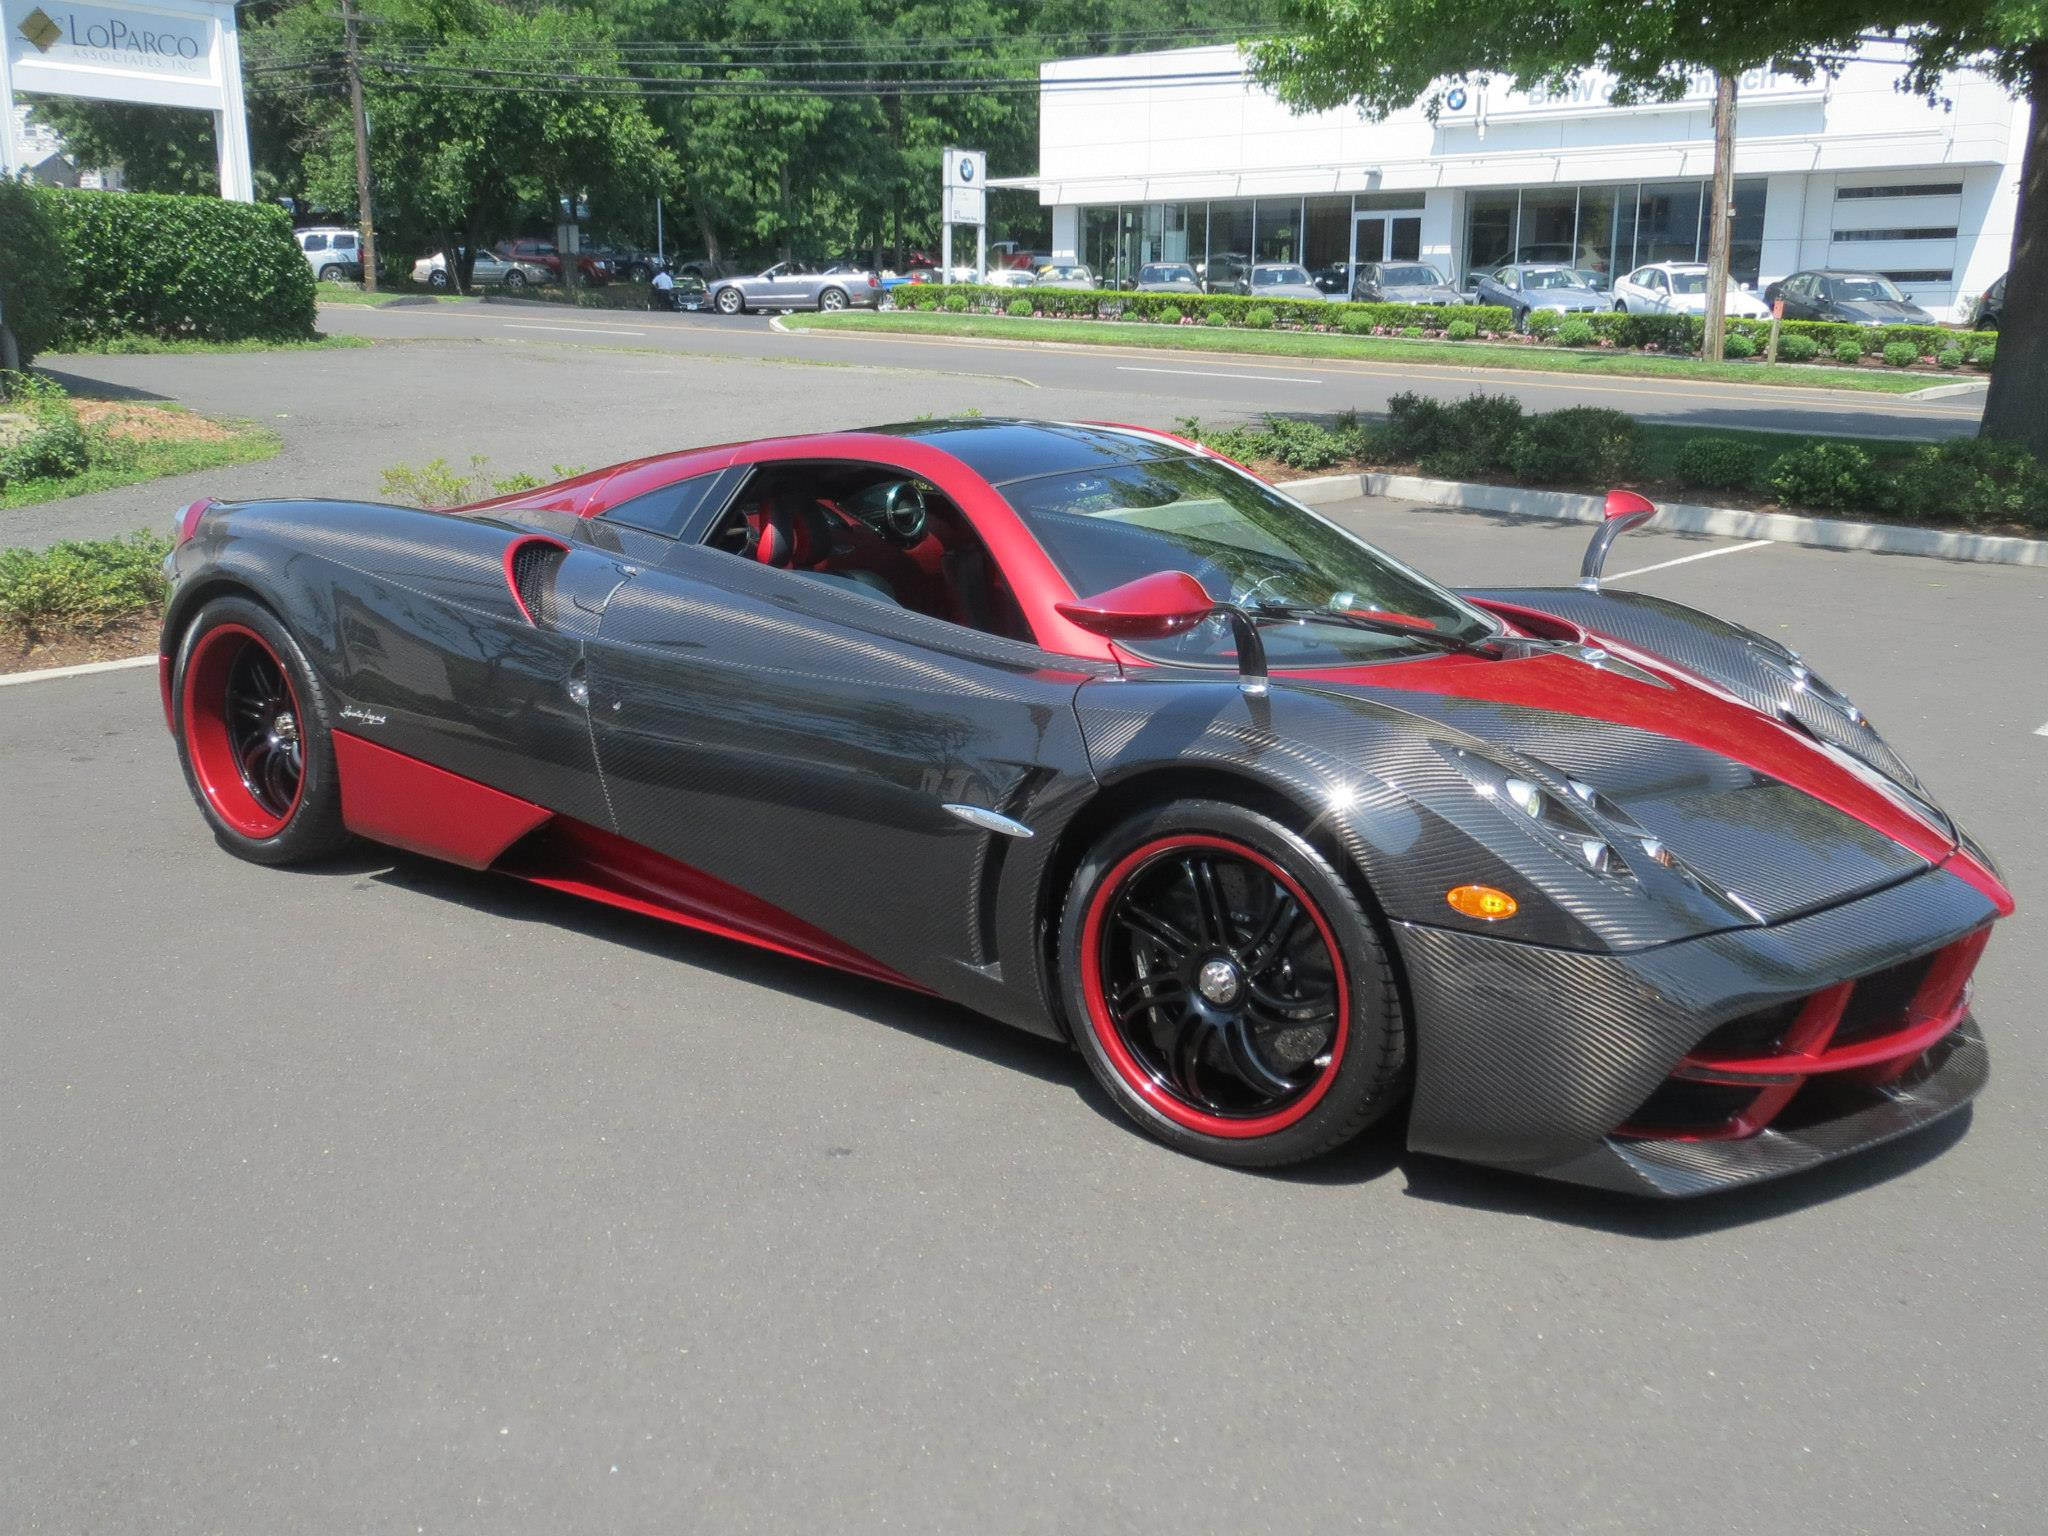 One of) The first Pagani Huayras delivered in the U.S.: Gallery